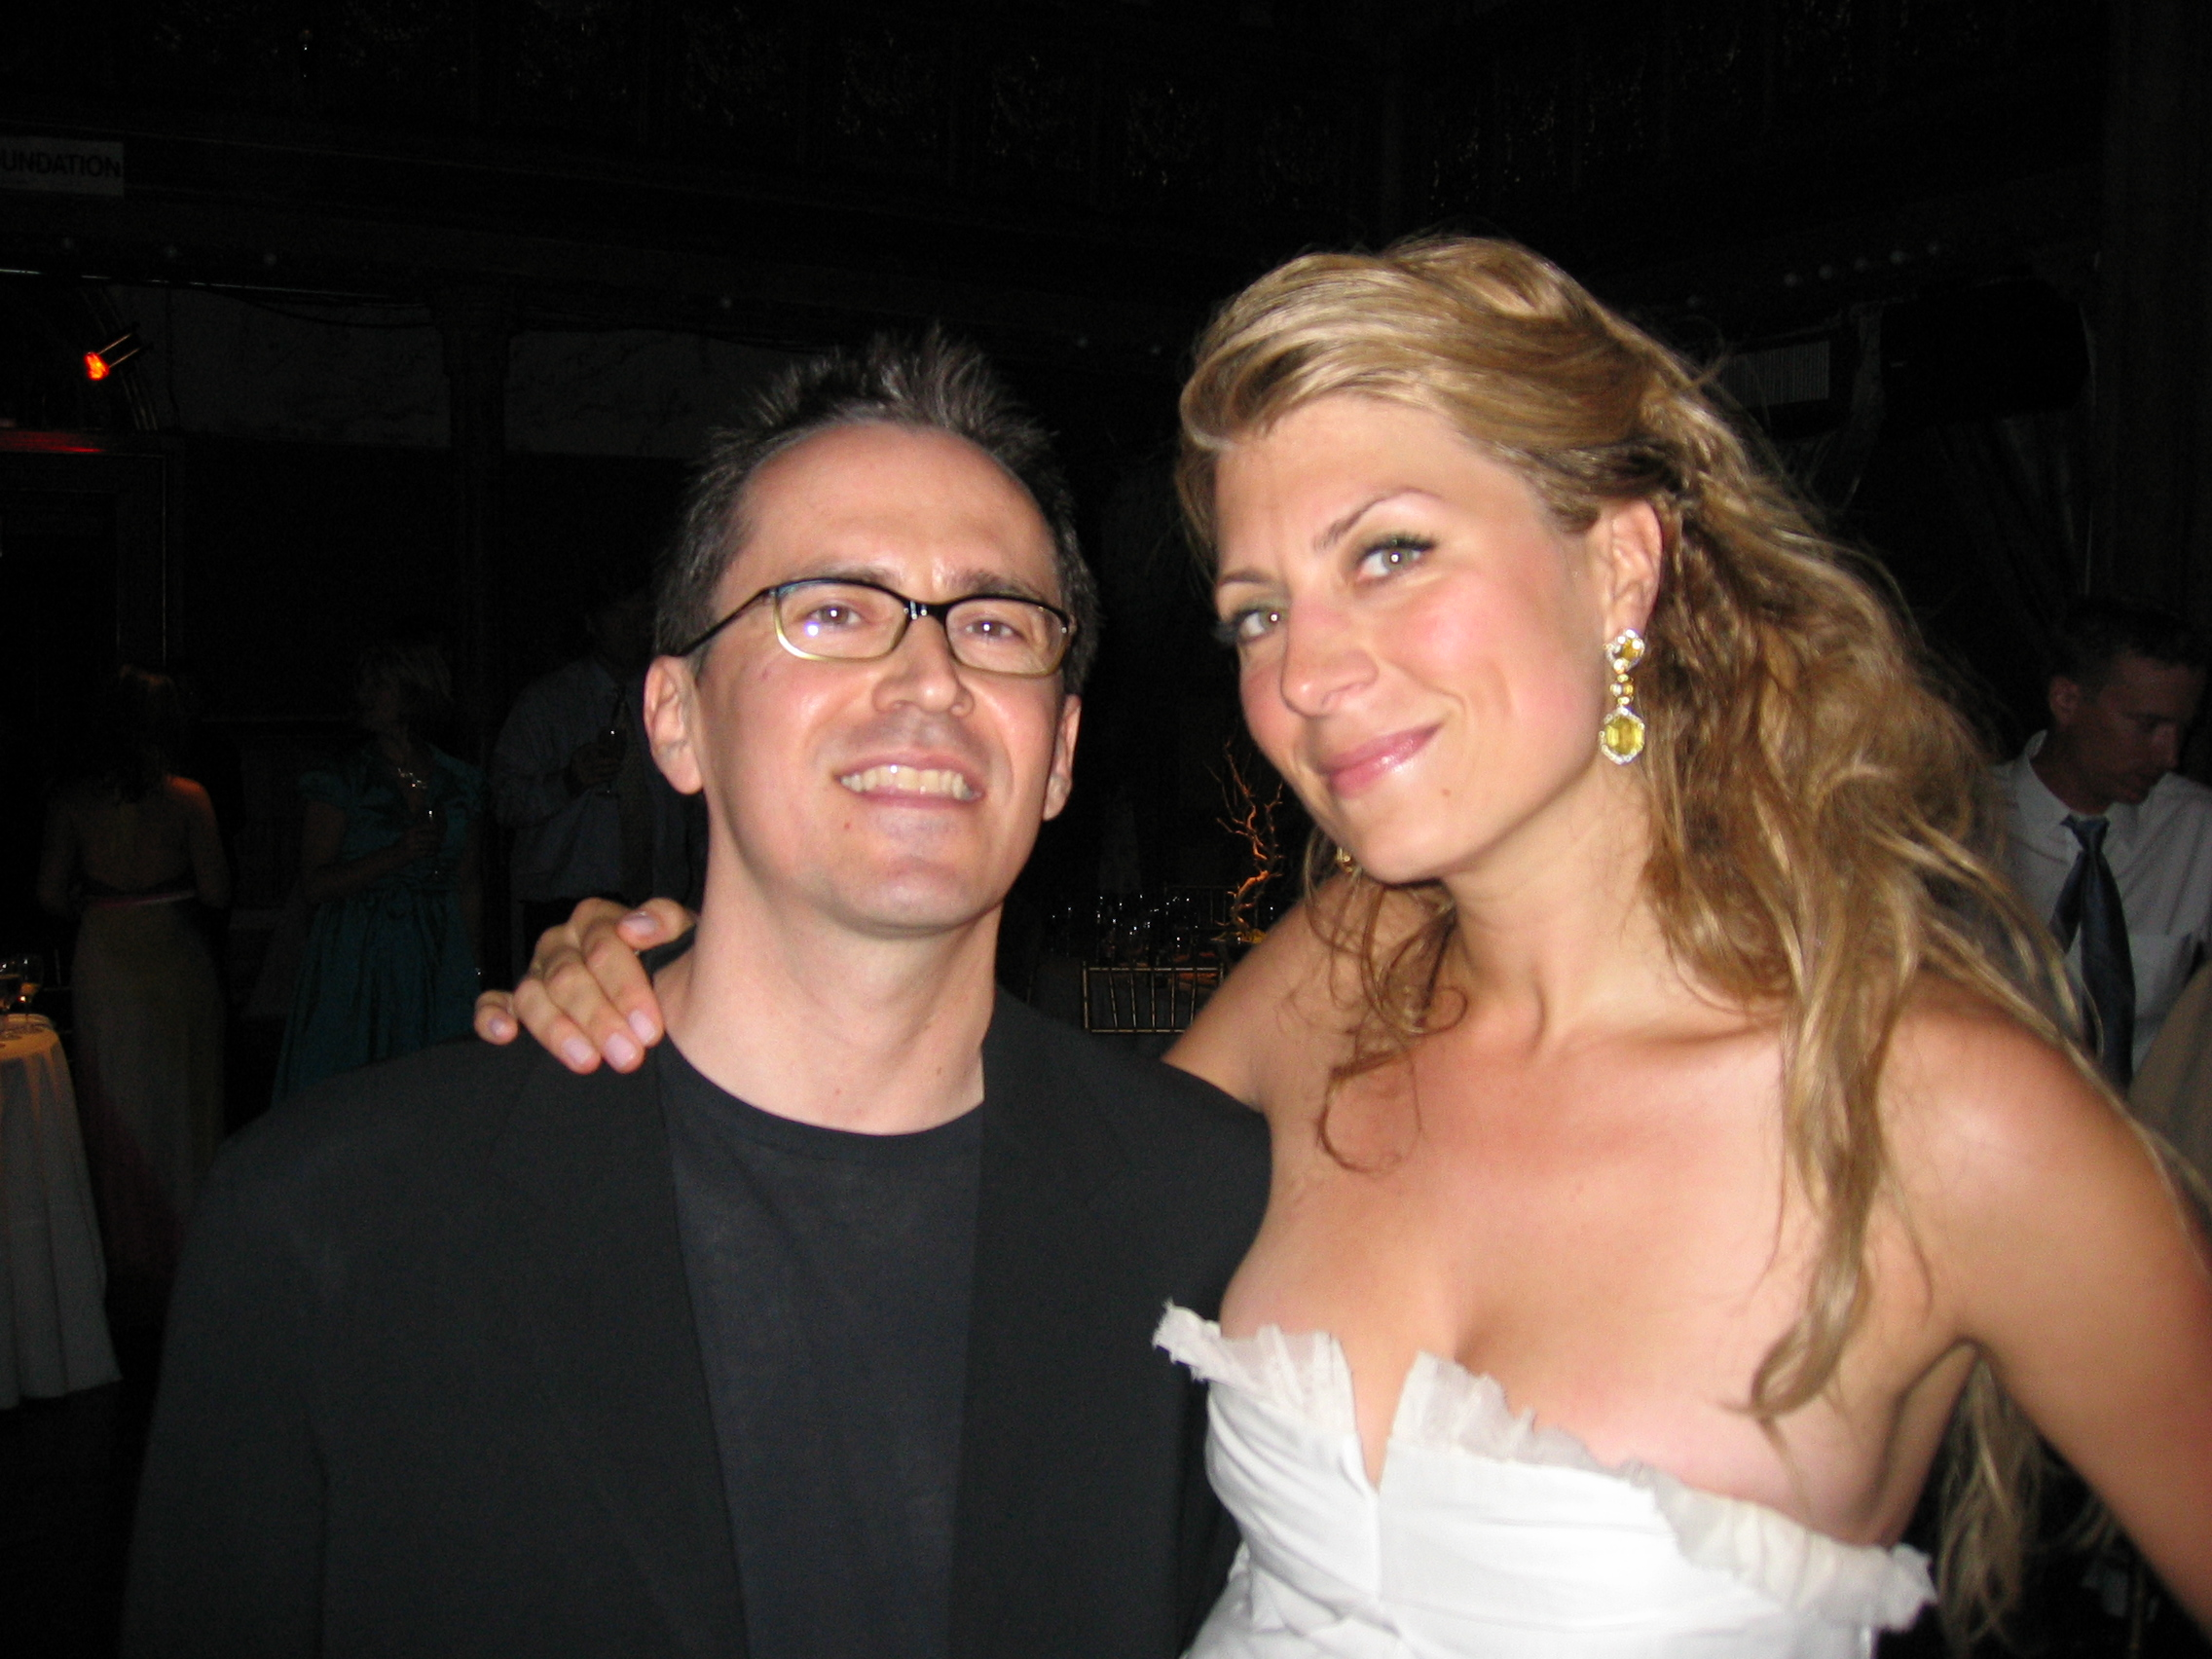 DJ Andy Anderson and Trading Spaces host Genevieve Gorder (Gorder/Harcott wedding)